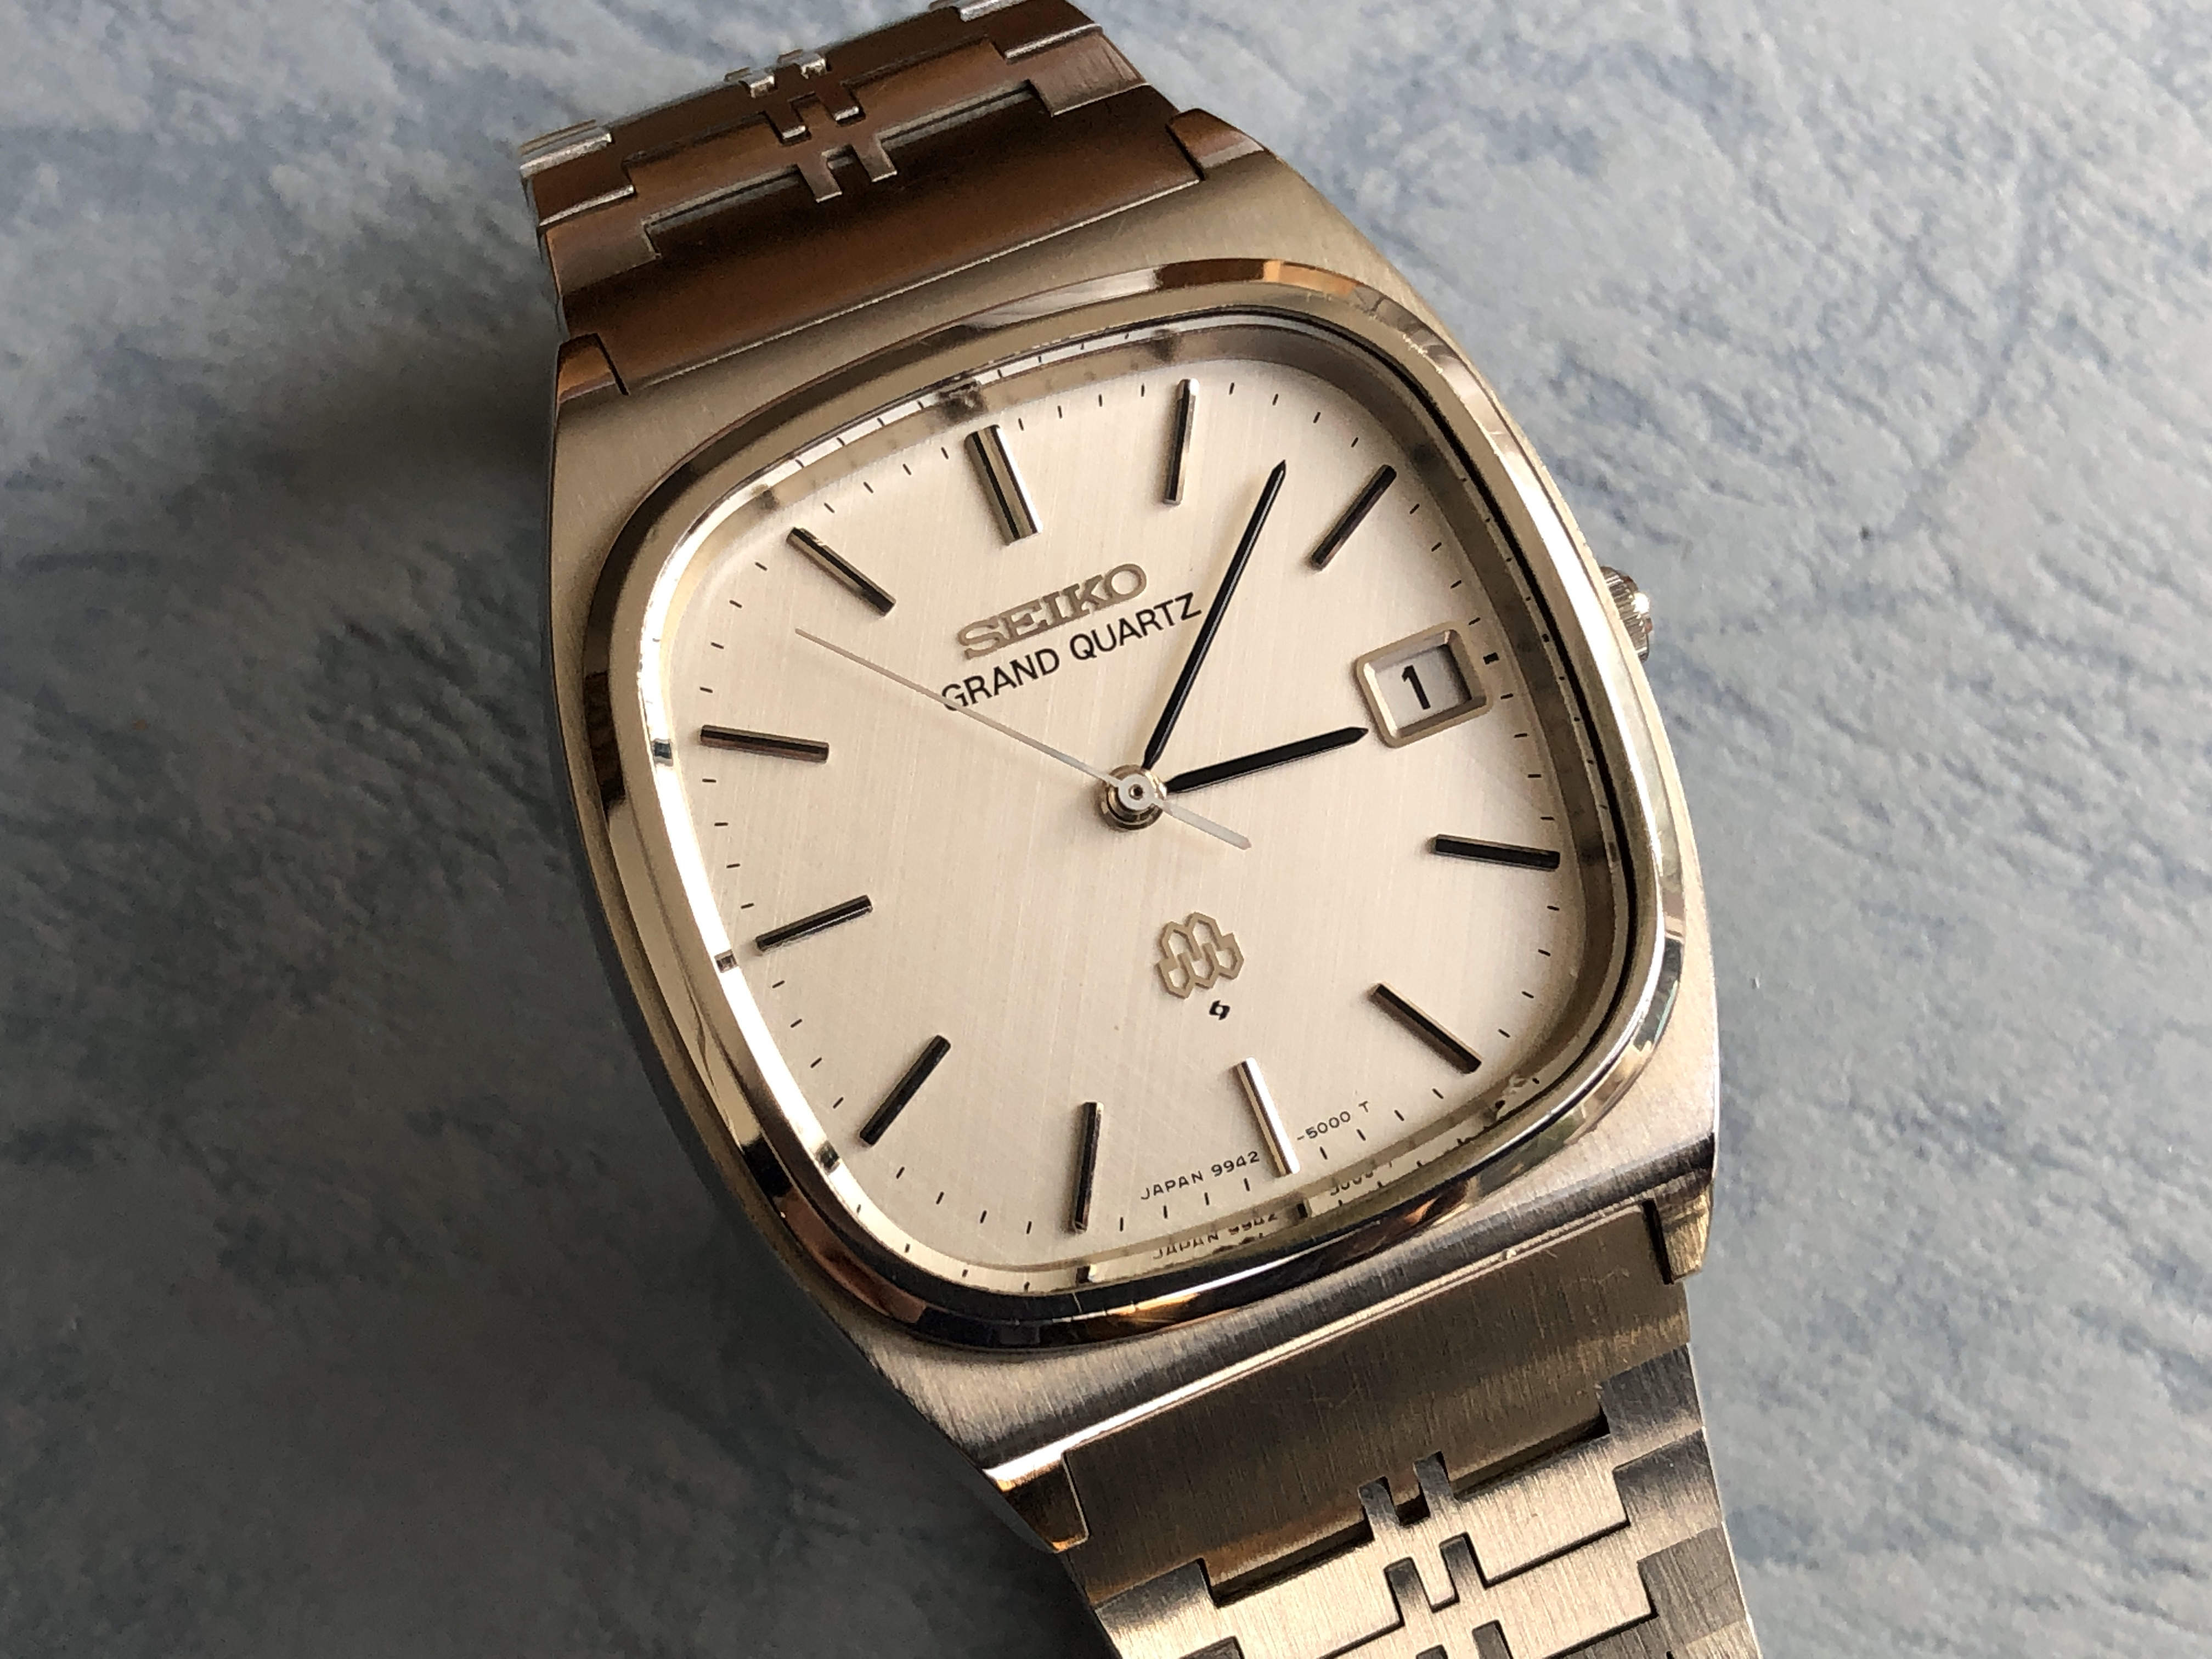 Seiko Grand Quartz 9942-5000 (Sold)